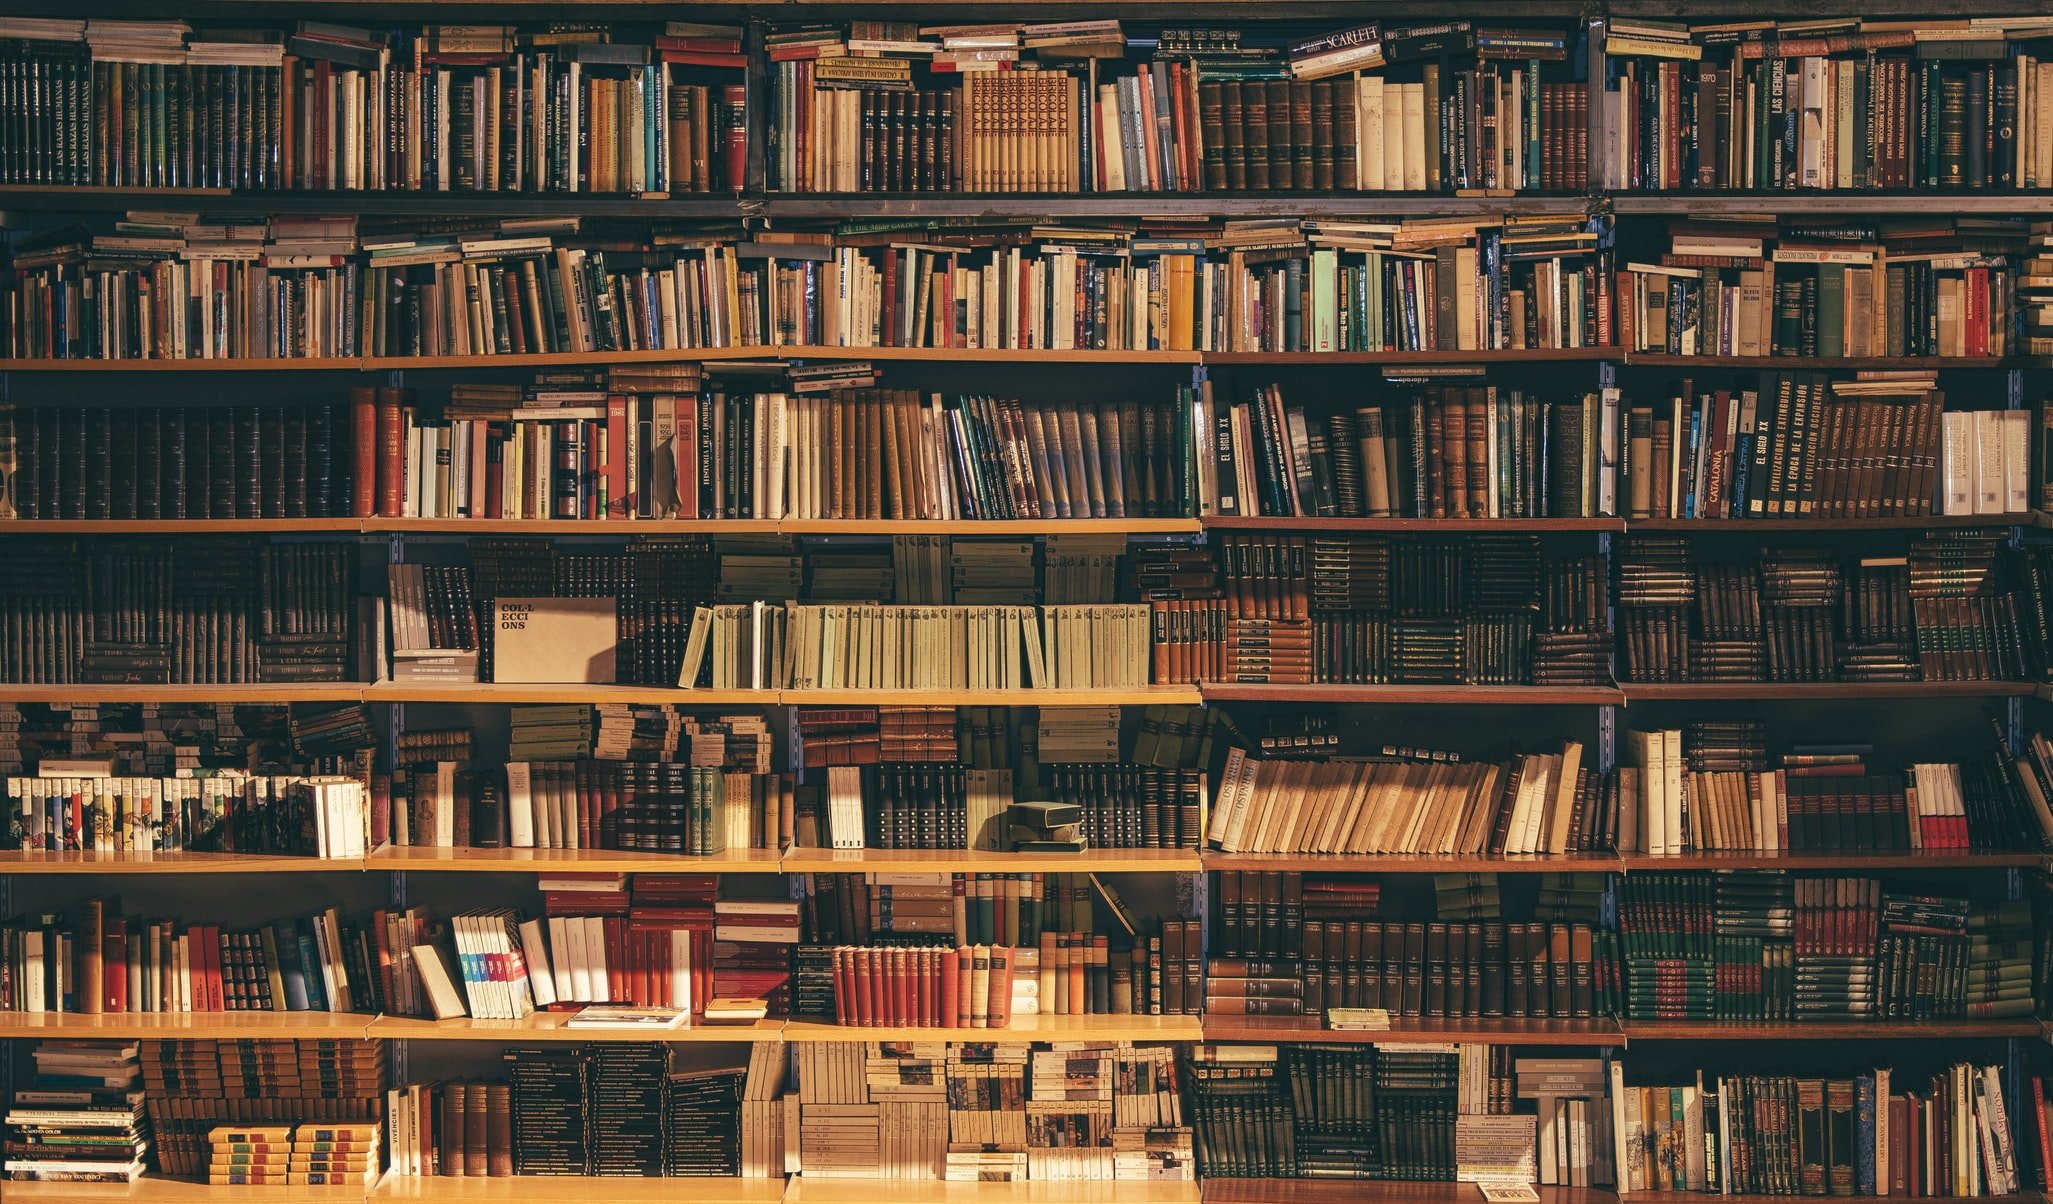 The Best Copywriting Books According to 17 Experts (And Me!) 📚